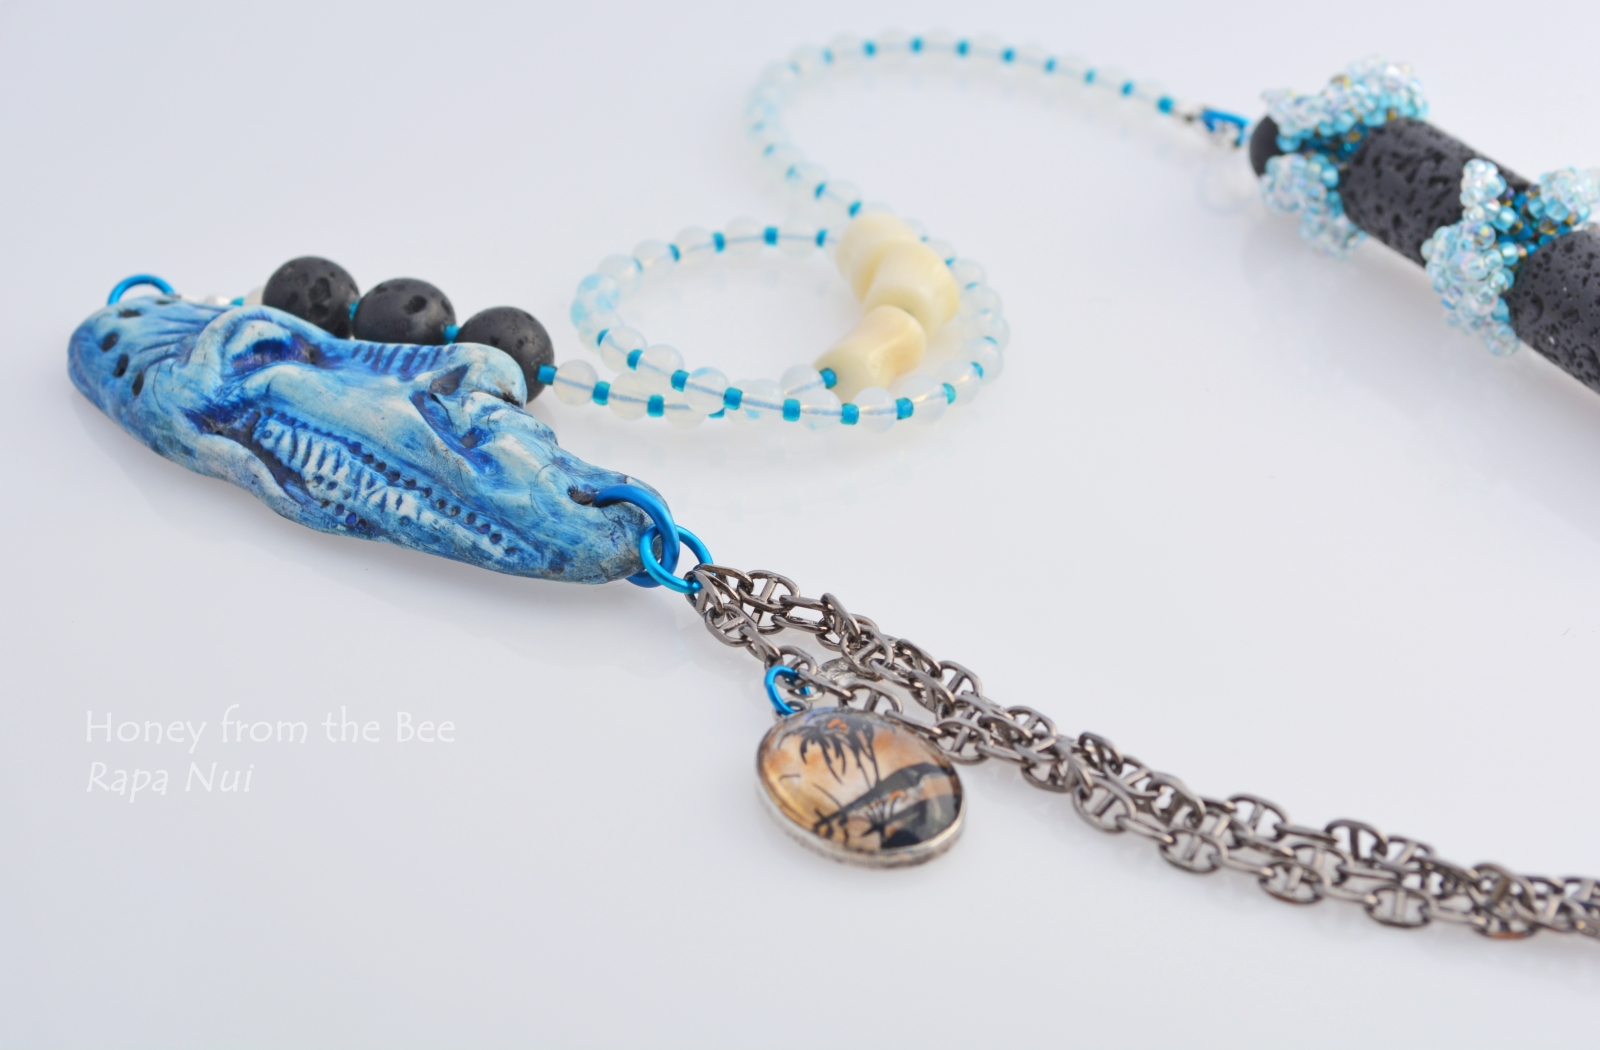 Mixed Media Ocean inspired necklace